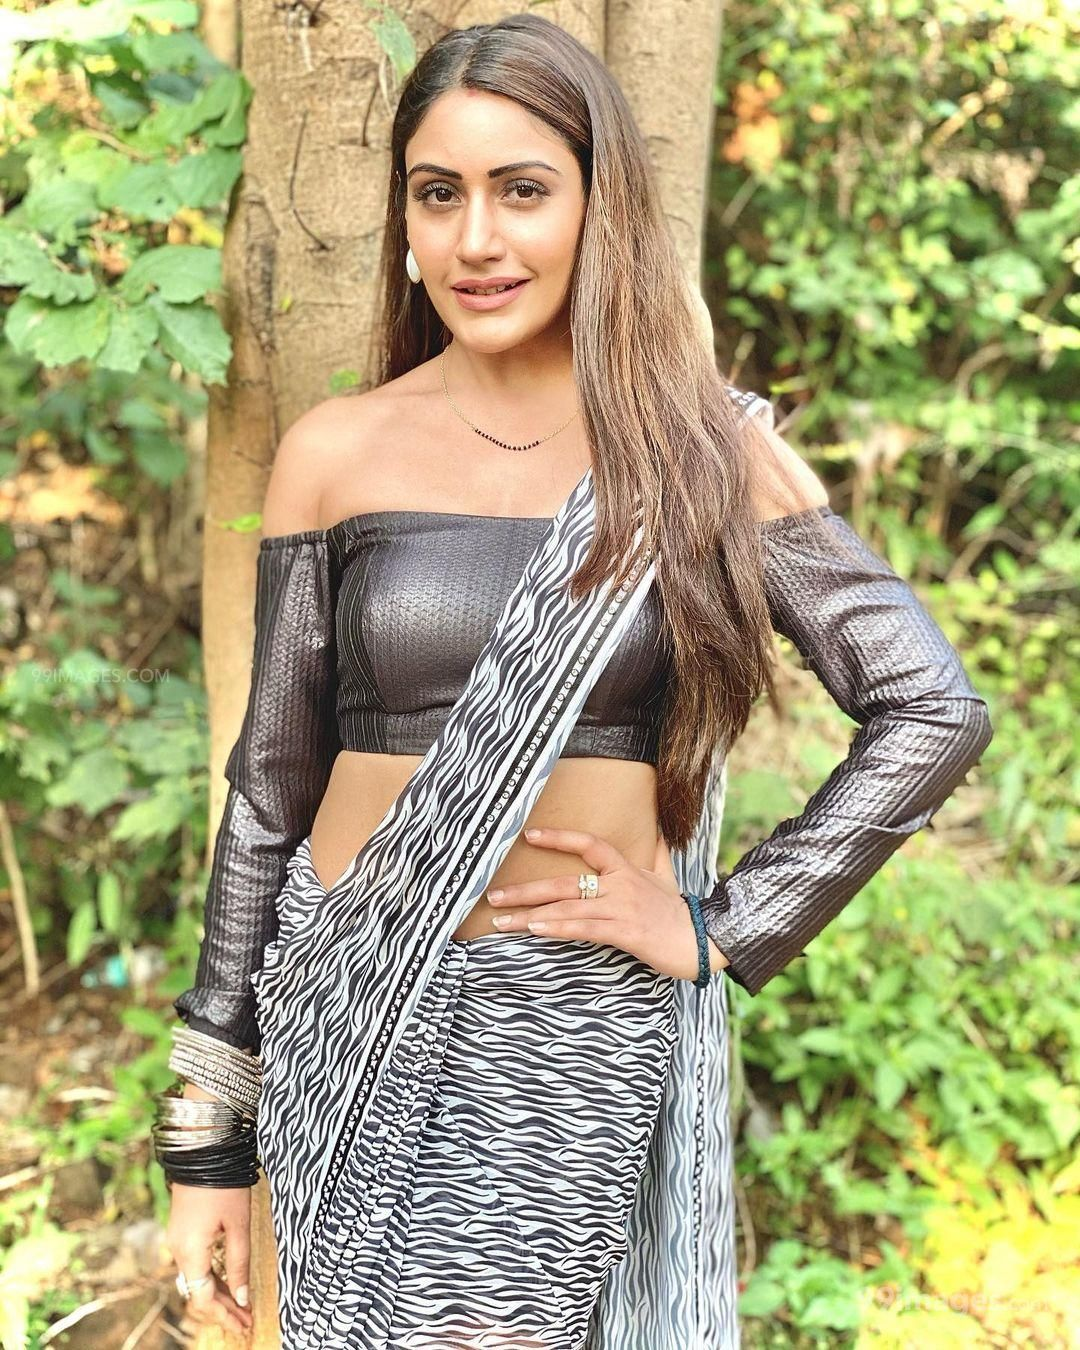 Surbhi Chandna  Hot HD Photos & Wallpapers for mobile Download, WhatsApp DP (1080p) (622306) - Surbhi Chandna